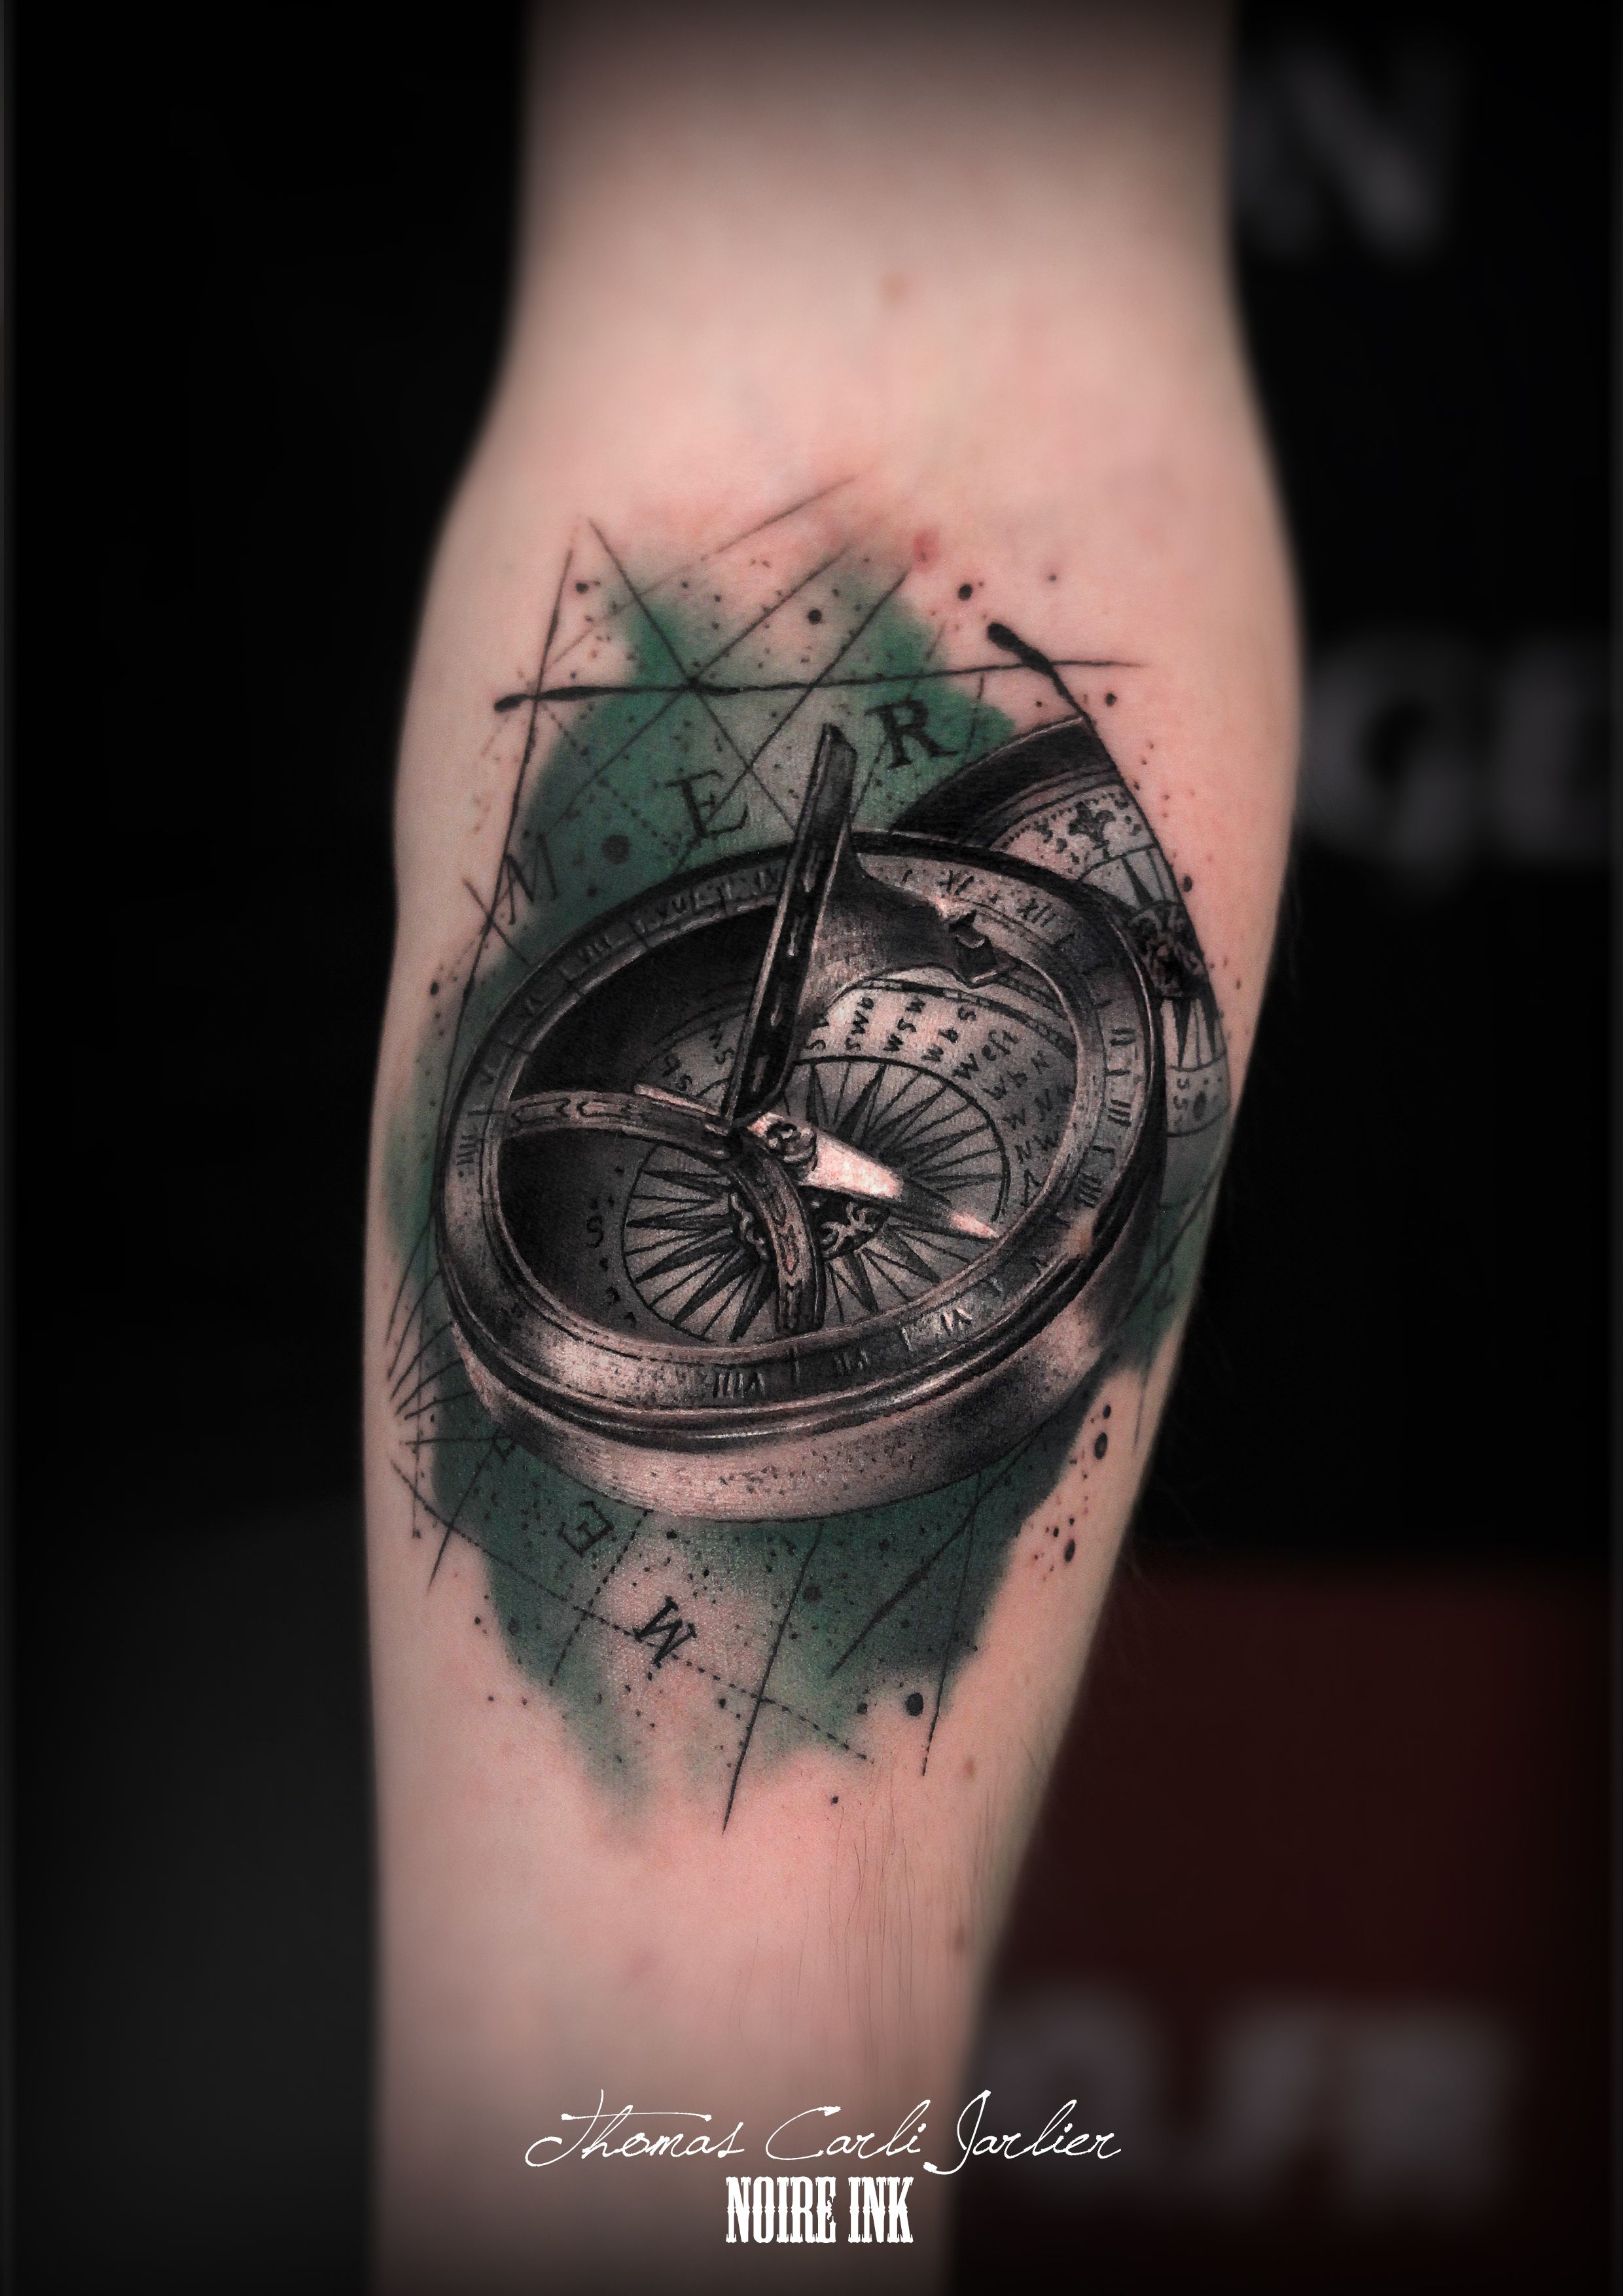 By Thomas Carli Jarlier At Noire Ink Tattoo Tatouages Cartes